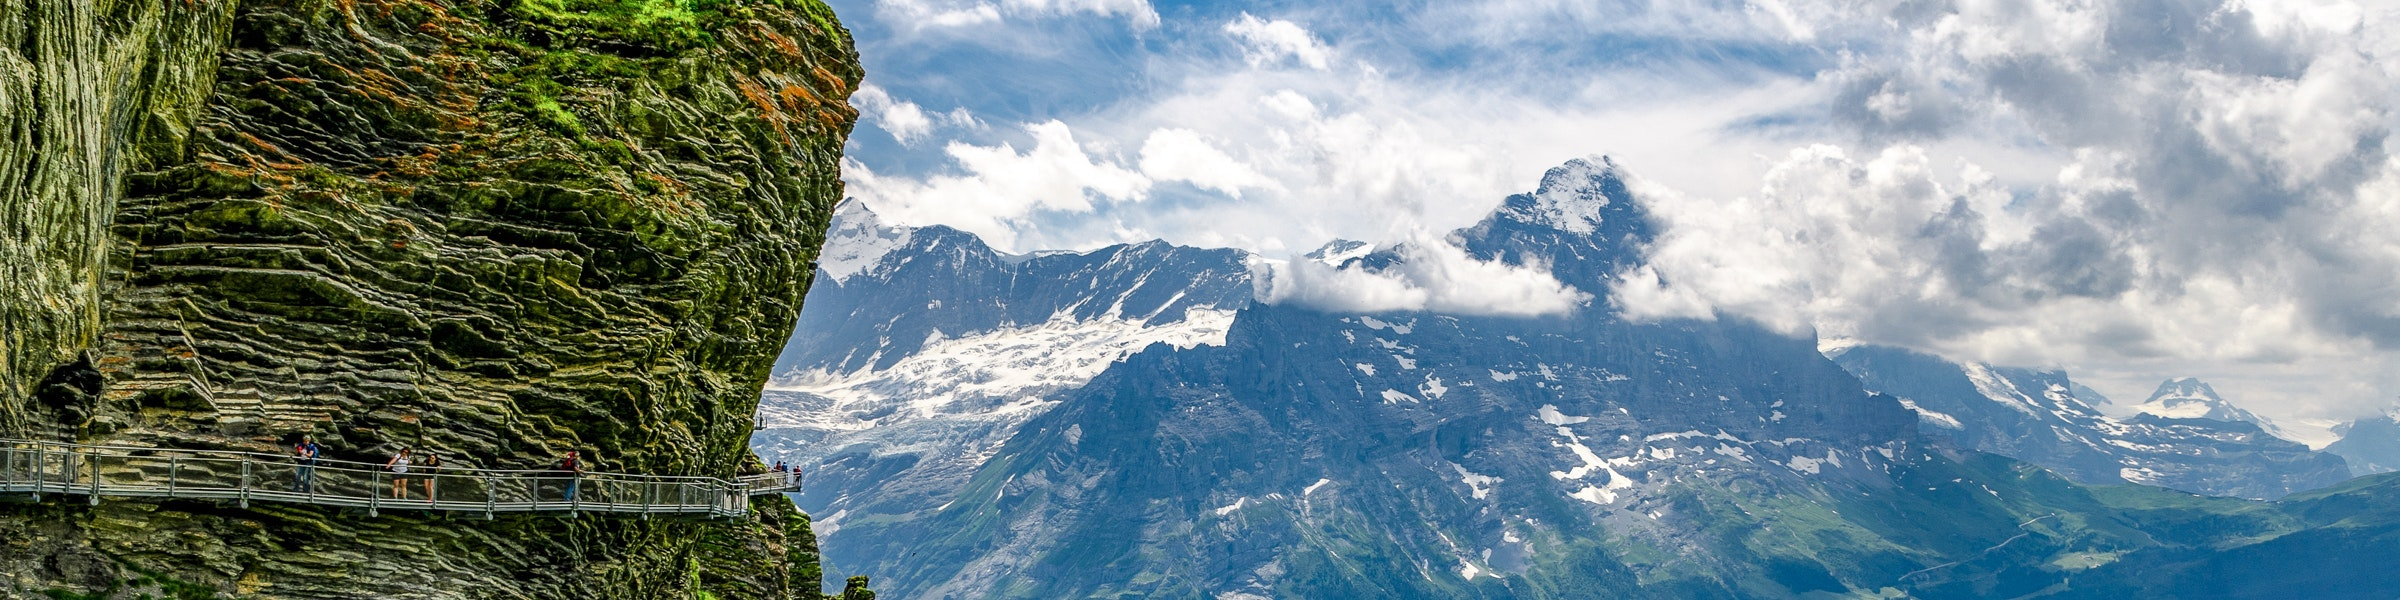 Mountains south of Schilthorn